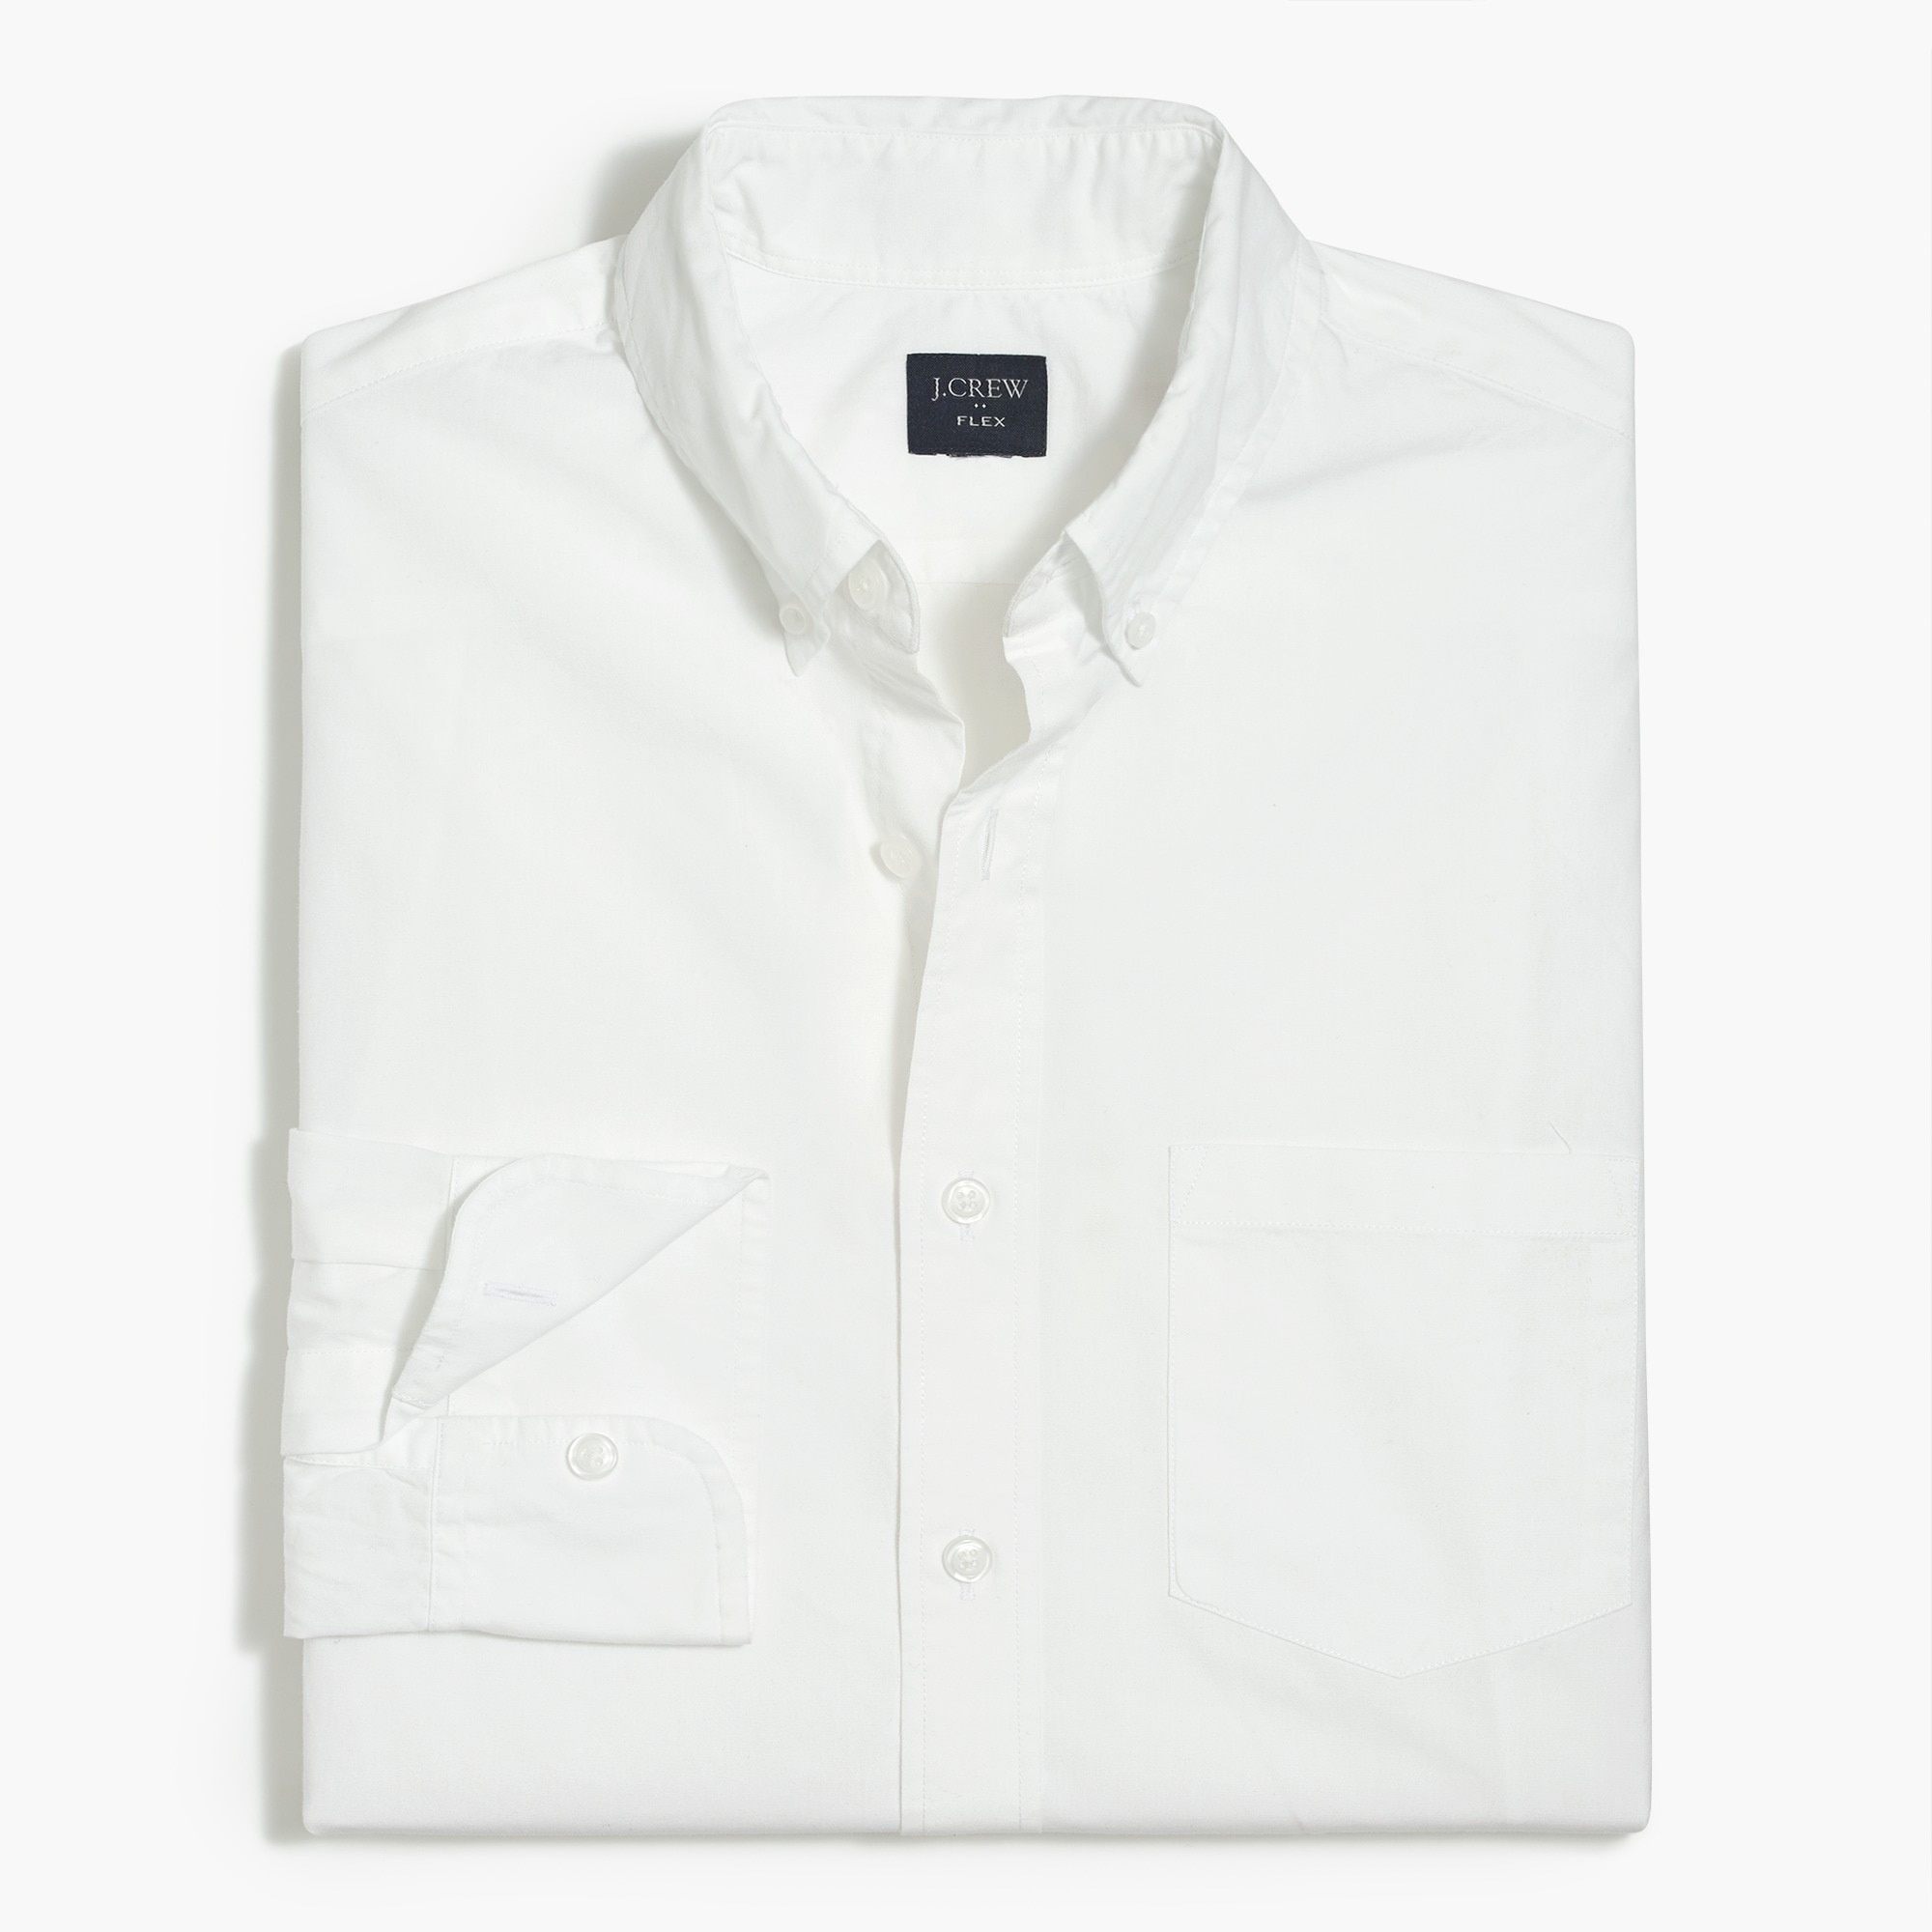 factory mens Untucked flex washed shirt